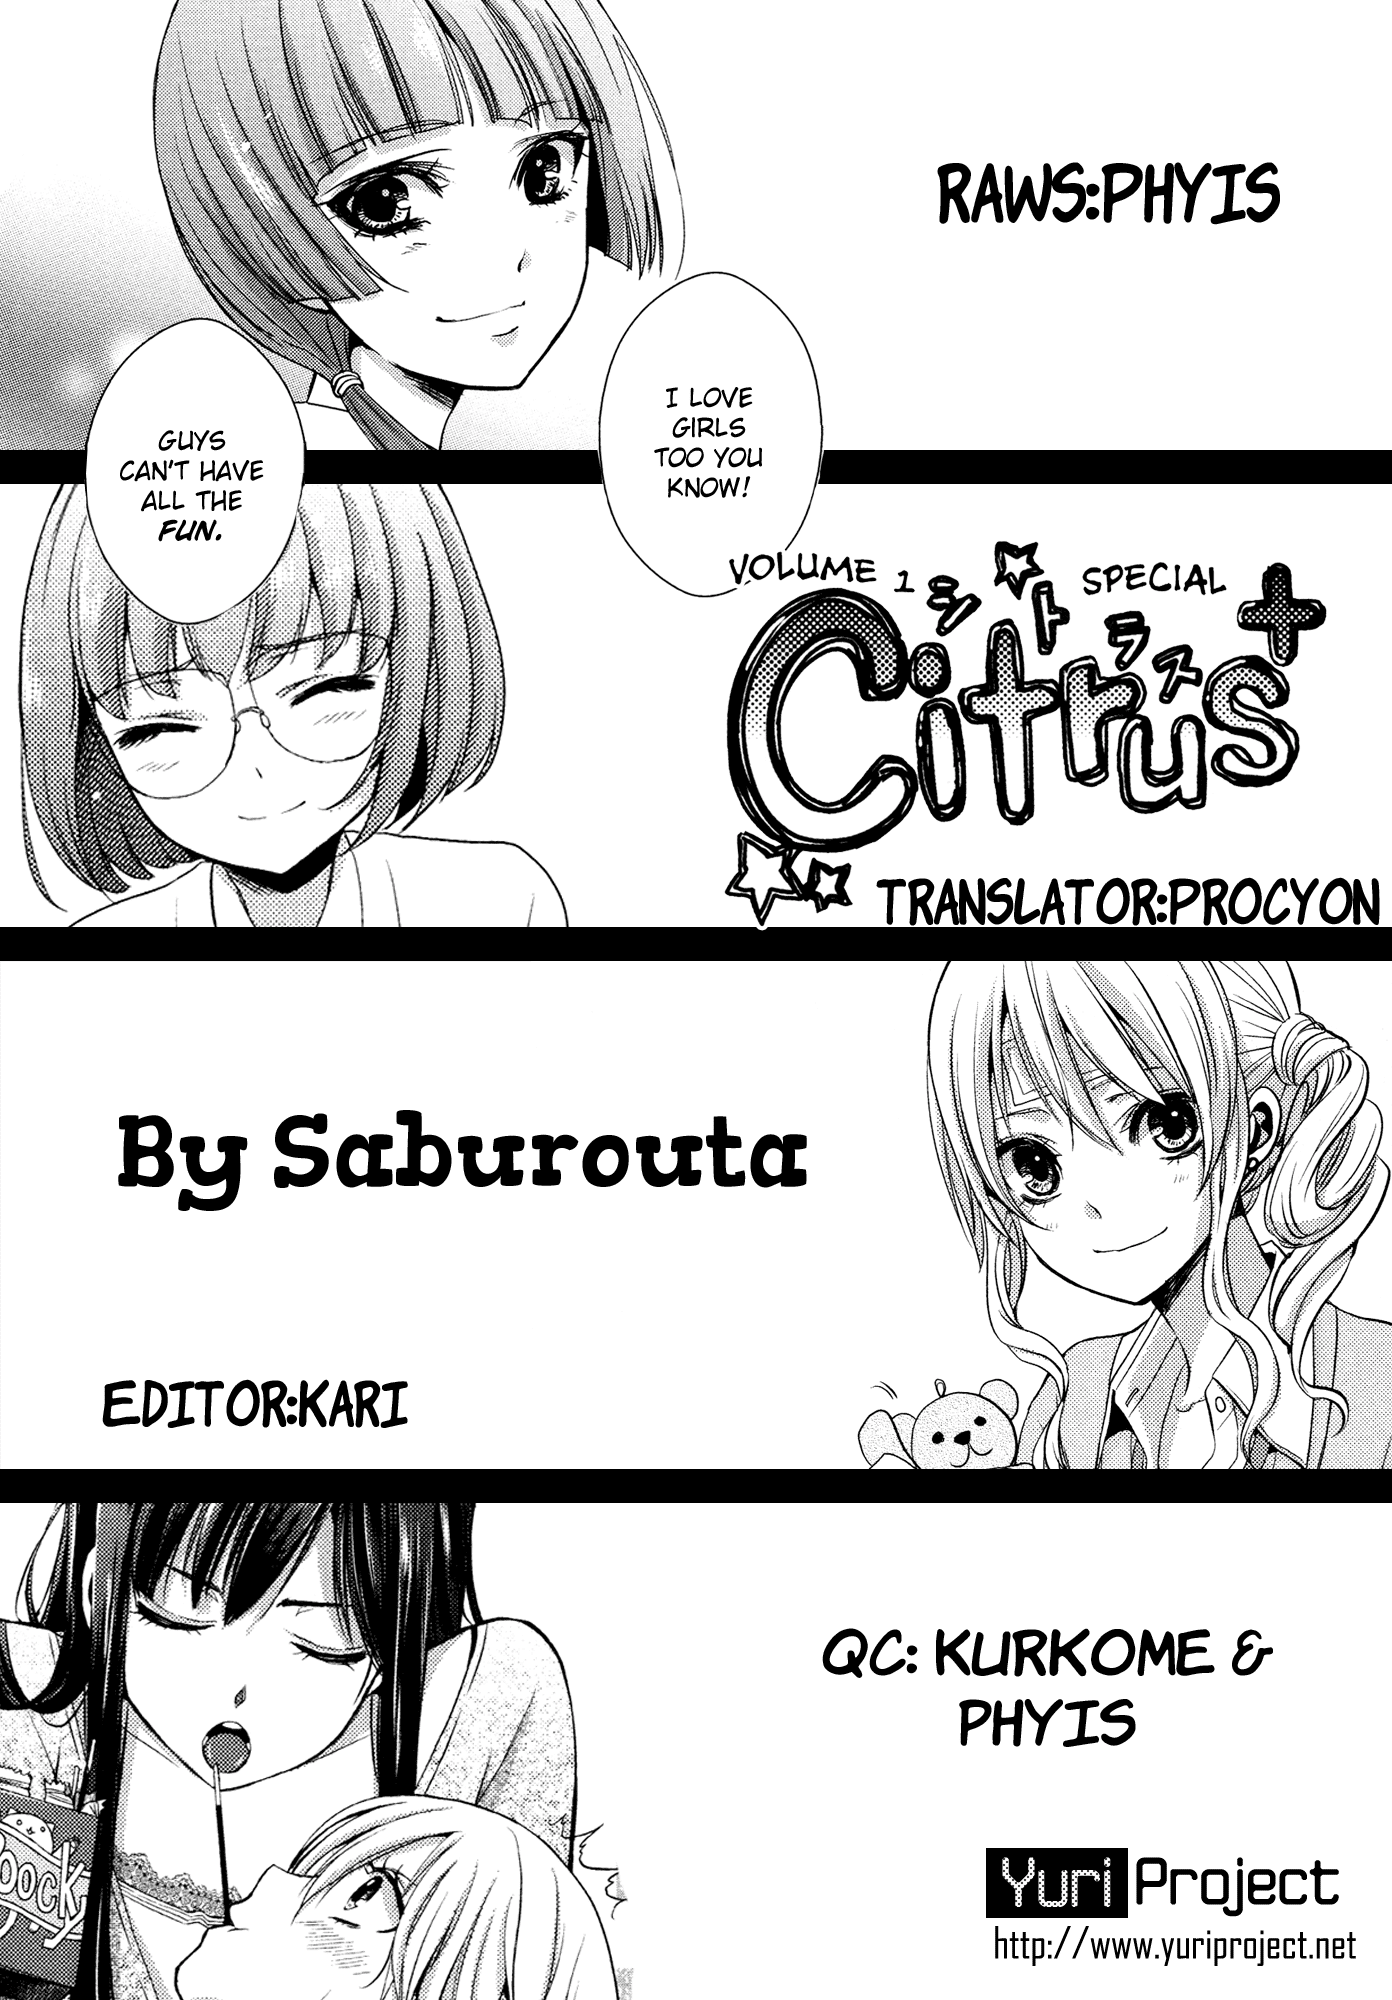 Citrus (SABURO Uta) - Chapter 6